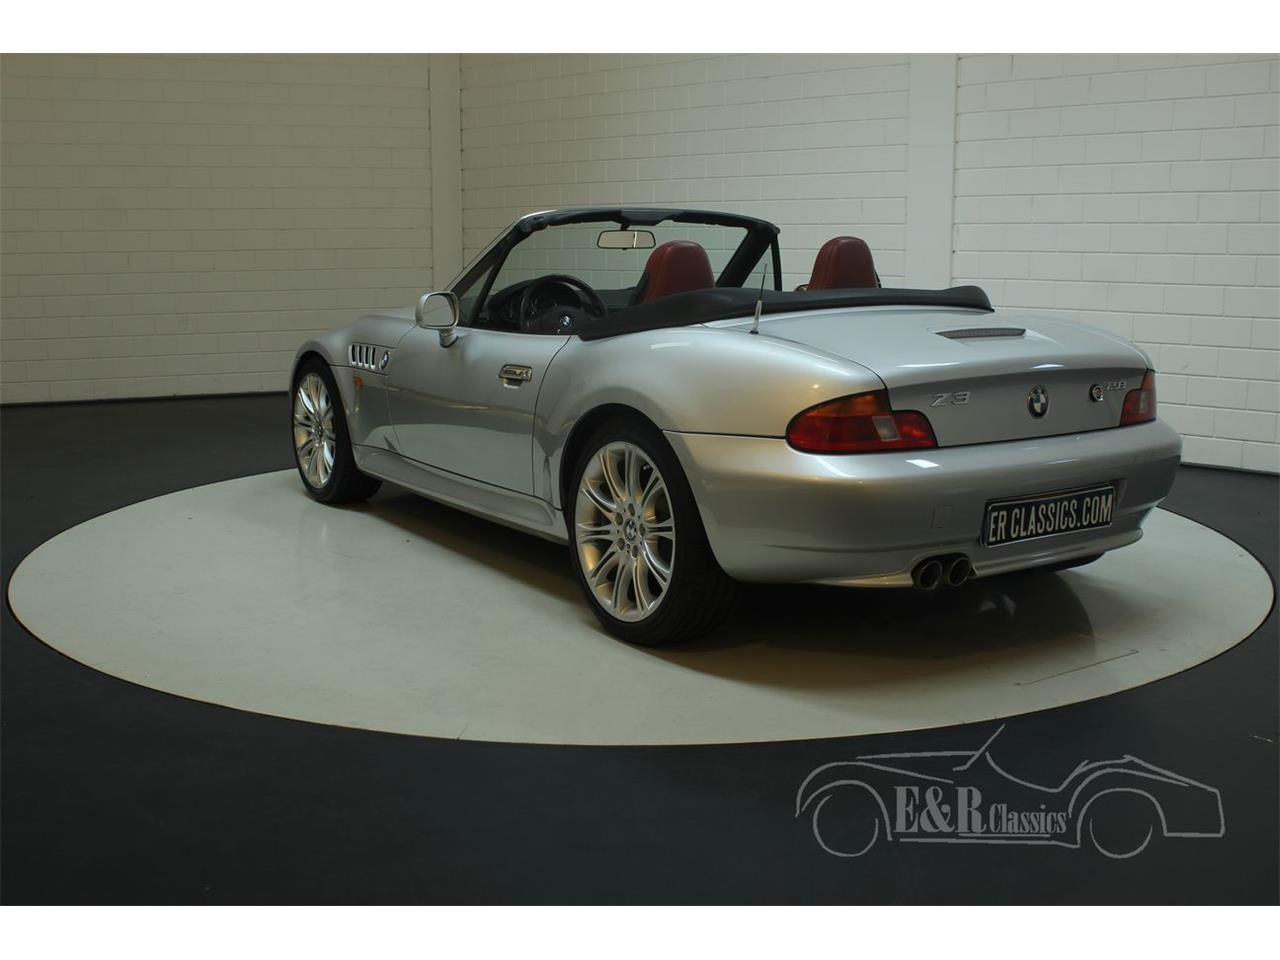 Large Picture of 2001 Z3 located in Noord-Brabant - $19,150.00 Offered by E & R Classics - PNX1